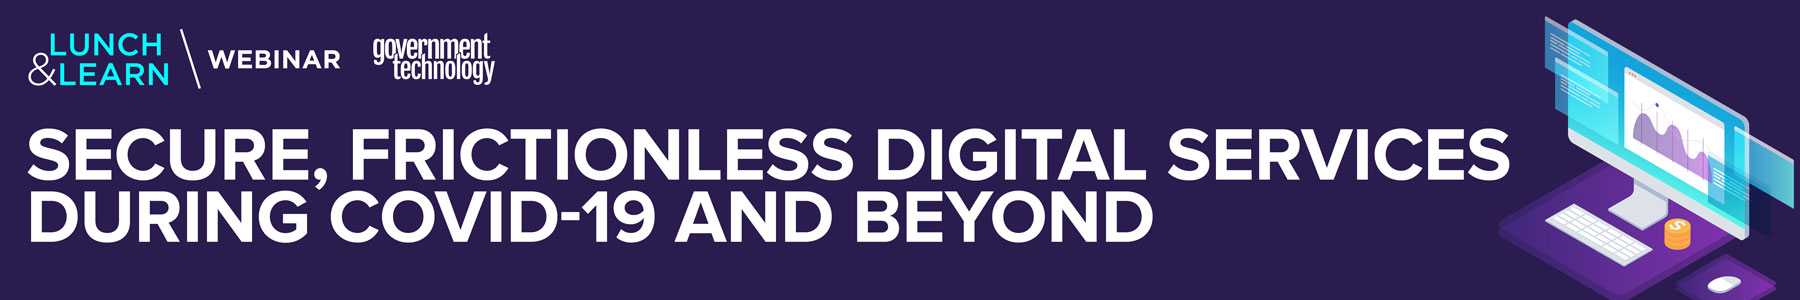 Secure, Frictionless Digital Services During COVID-19 and Beyond